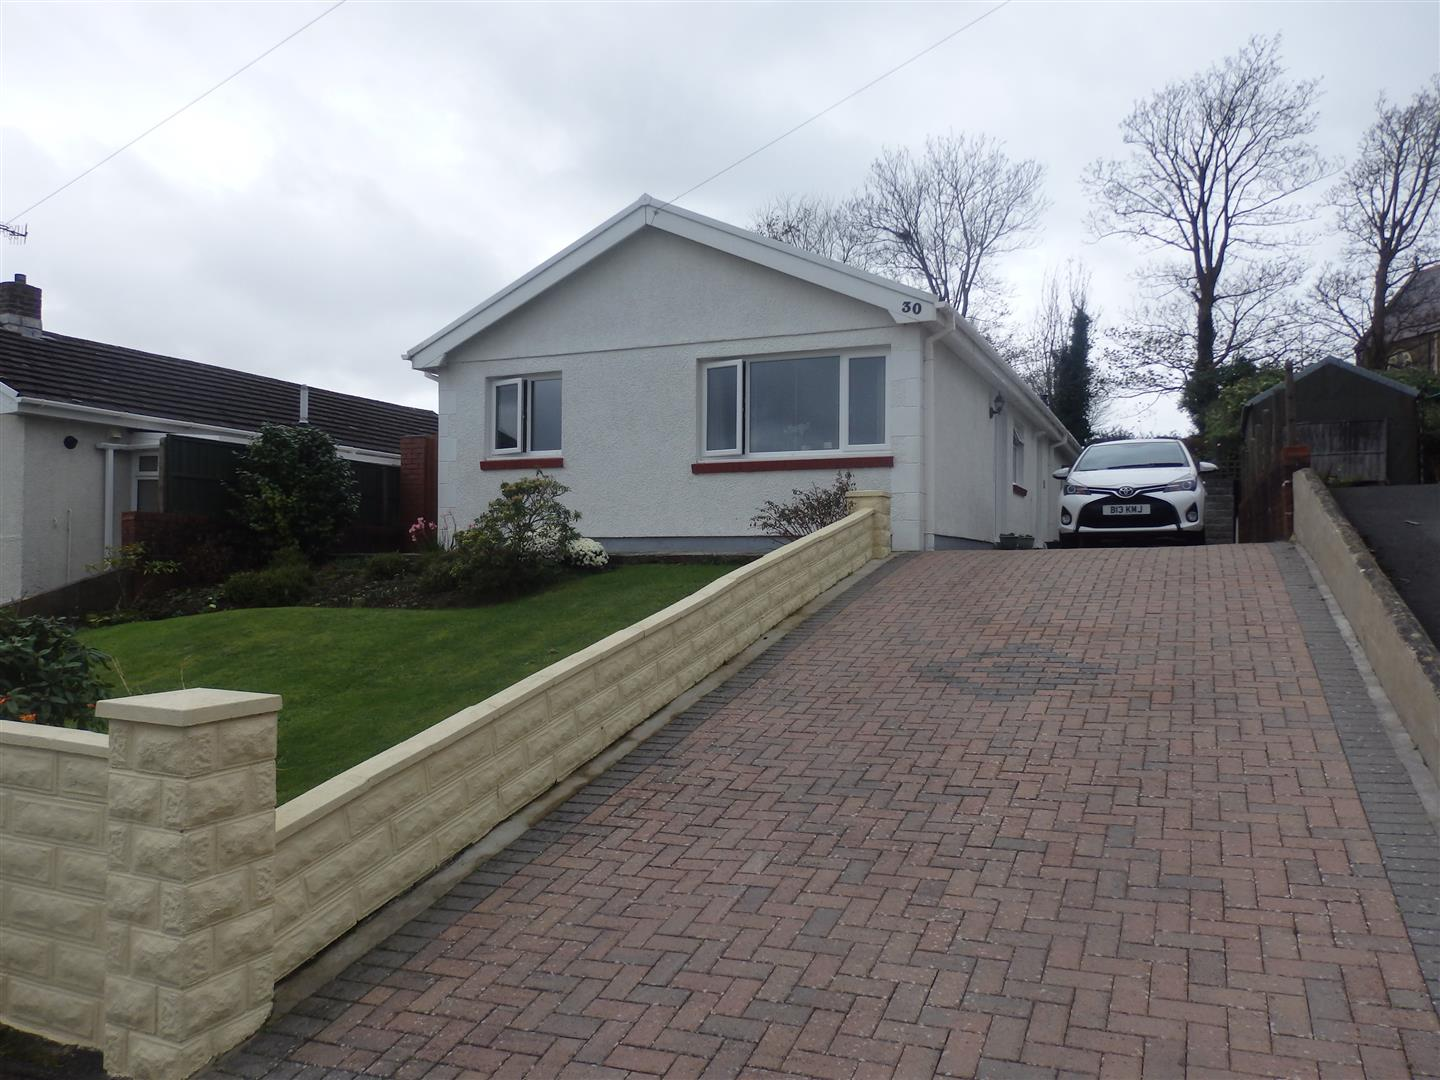 30 St. Marys Rise, Burry Port, Carmarthenshire